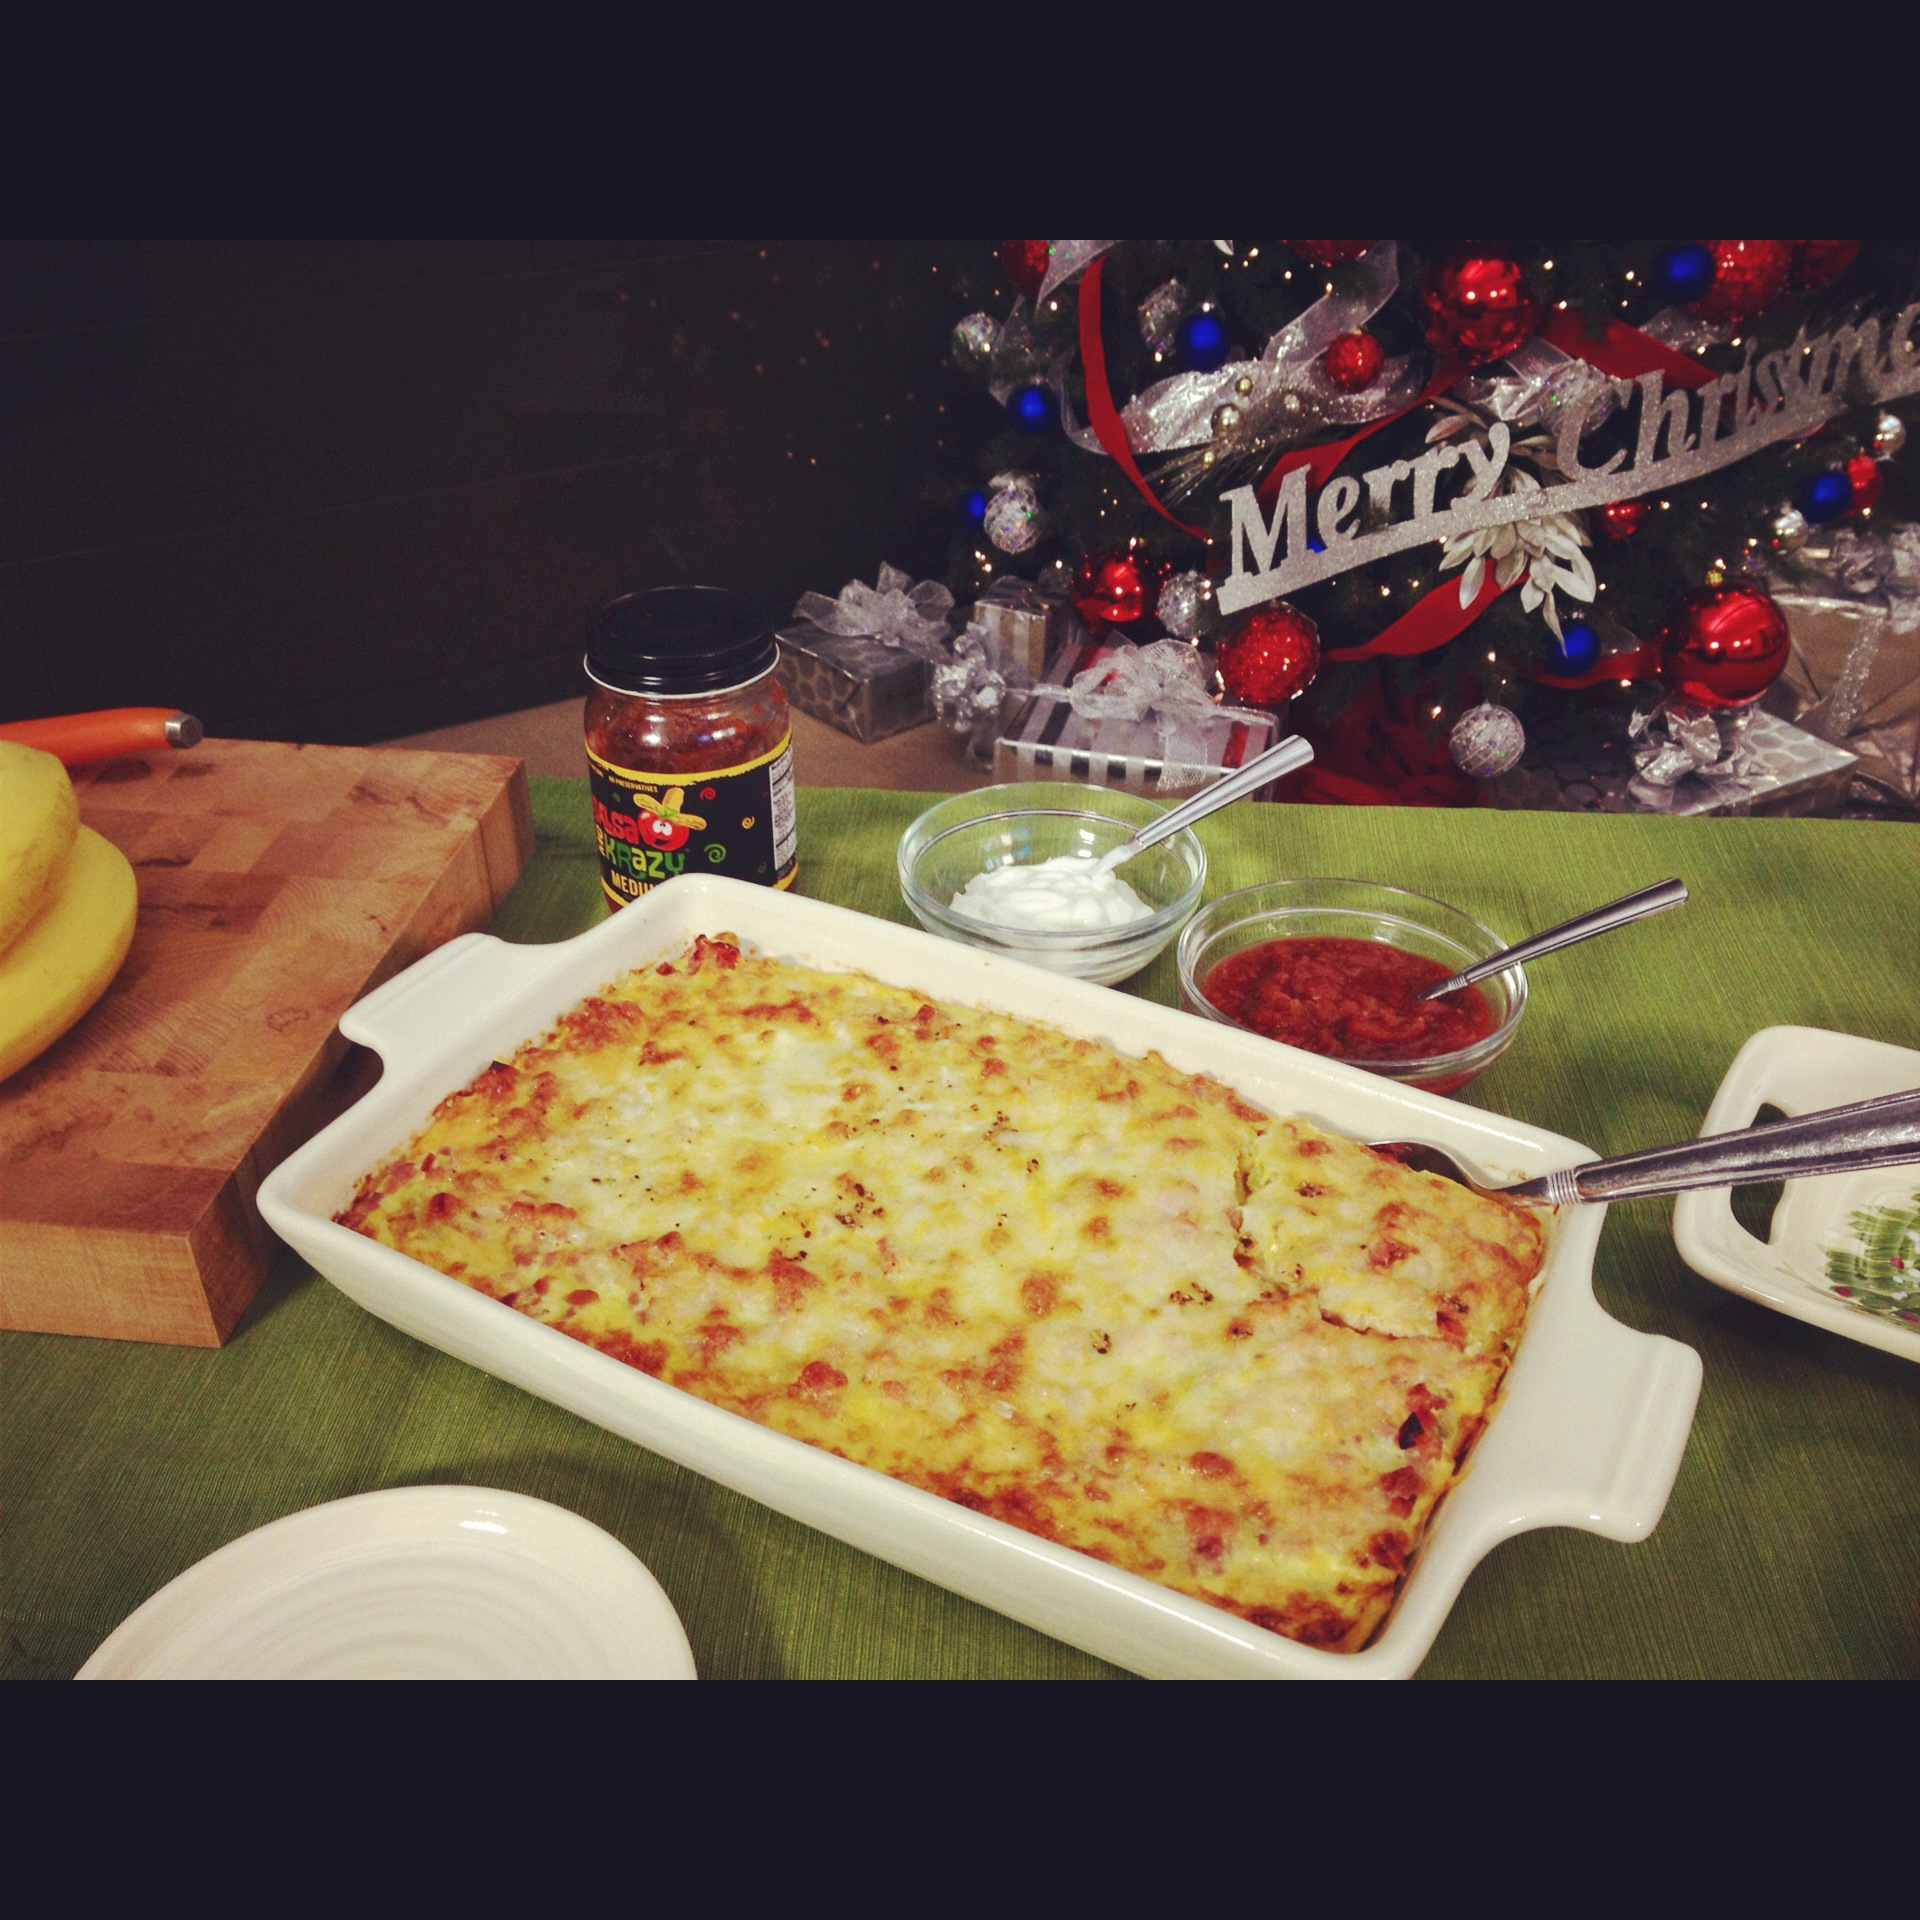 And with a bit of salsa, I used my favorite-Salsa me Krazy, this is one zesty breakfast!